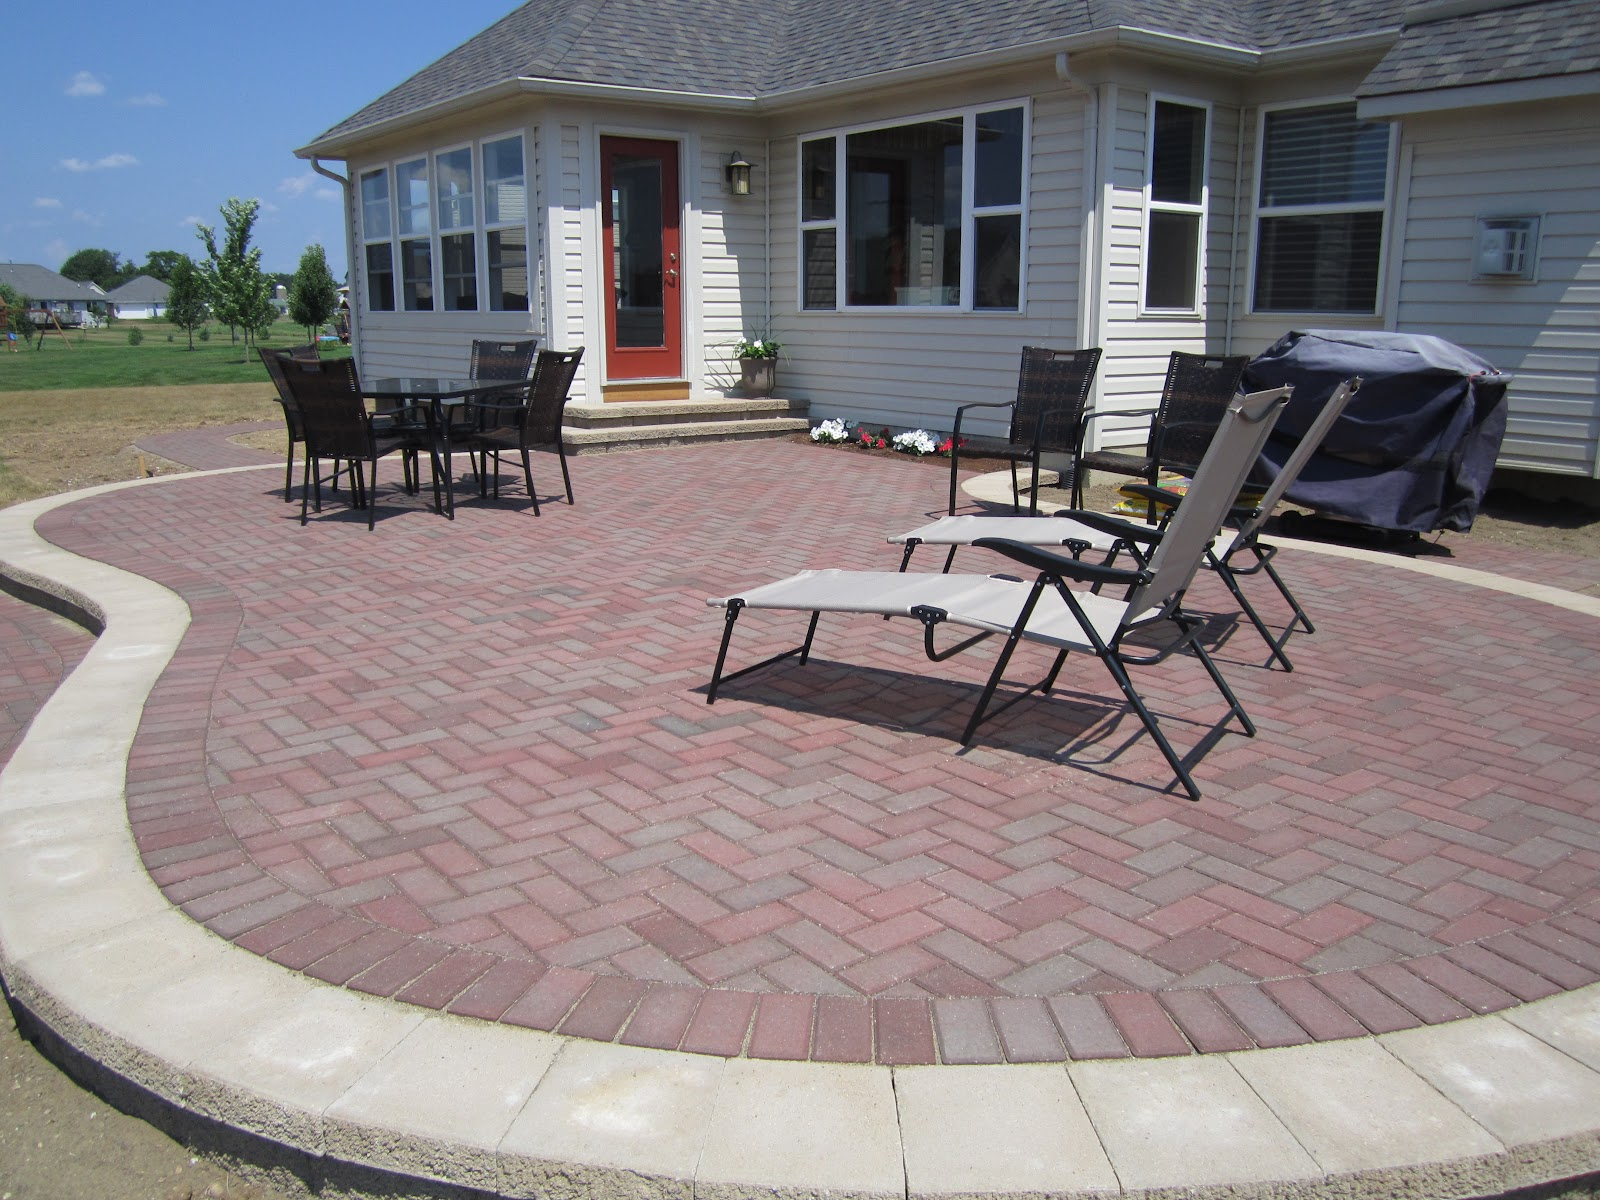 Howard County Patio Jobs. These Are Photos Of Some Patios We Have Installed  In Howard County. We Service The Baltimore Metro Area As Well. Contact Us  Today ...